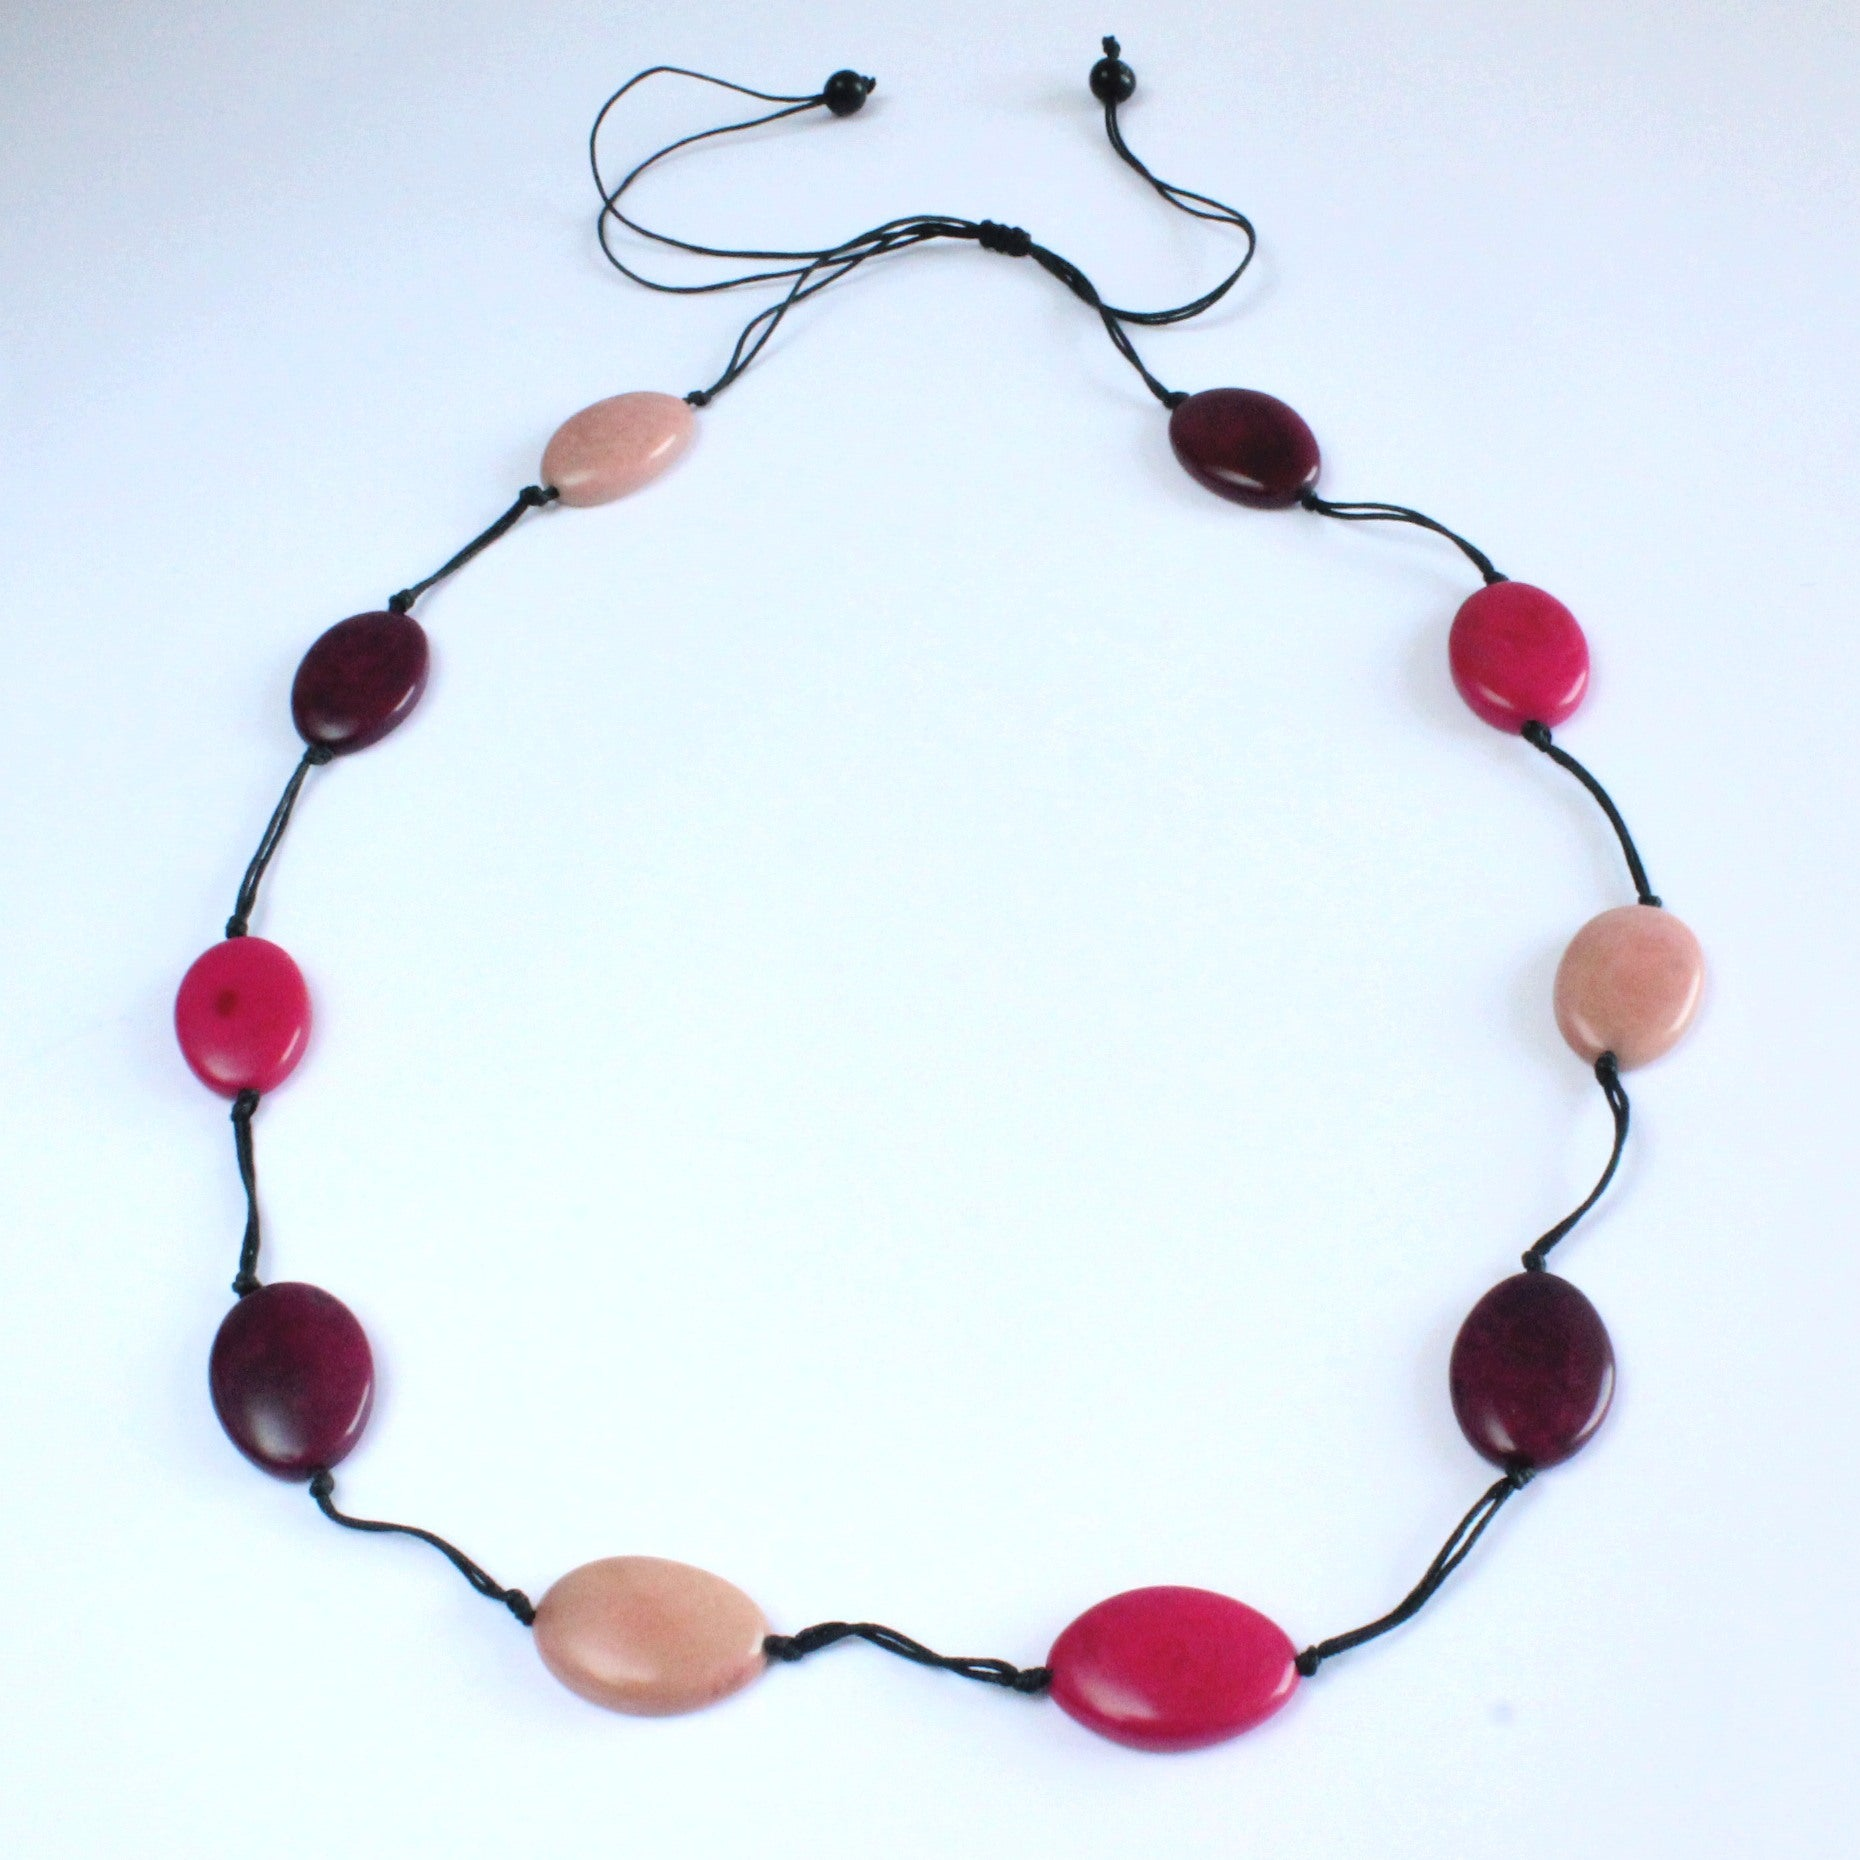 Necklace, sustainable tagua nut, pink, adjustable, handmade